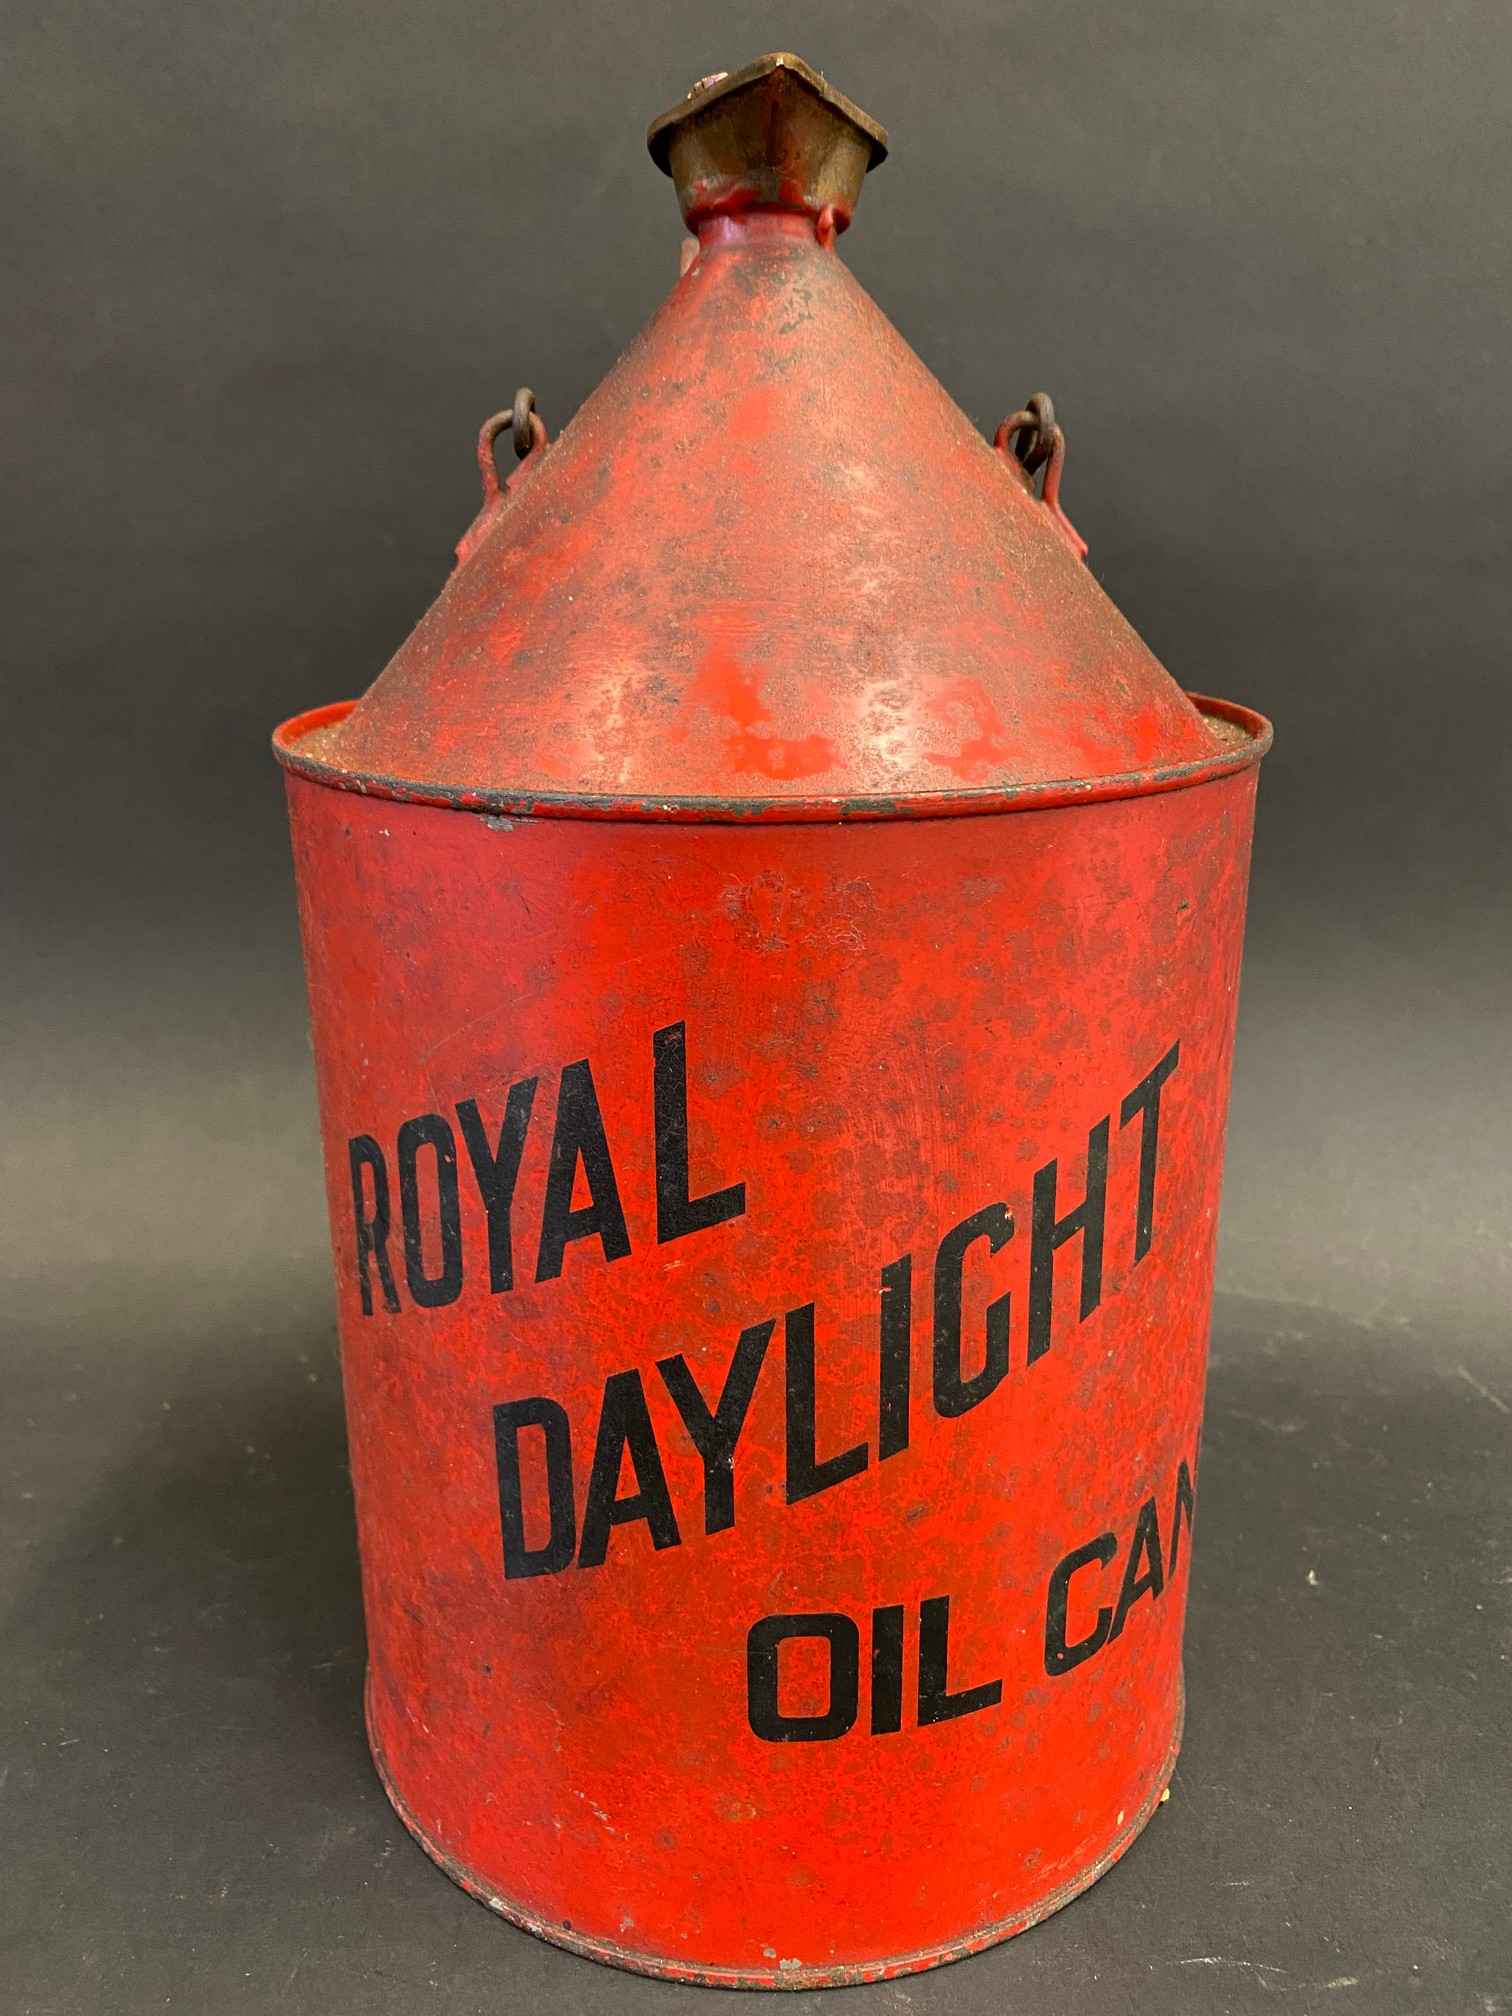 A Royal Daylight Oil can.